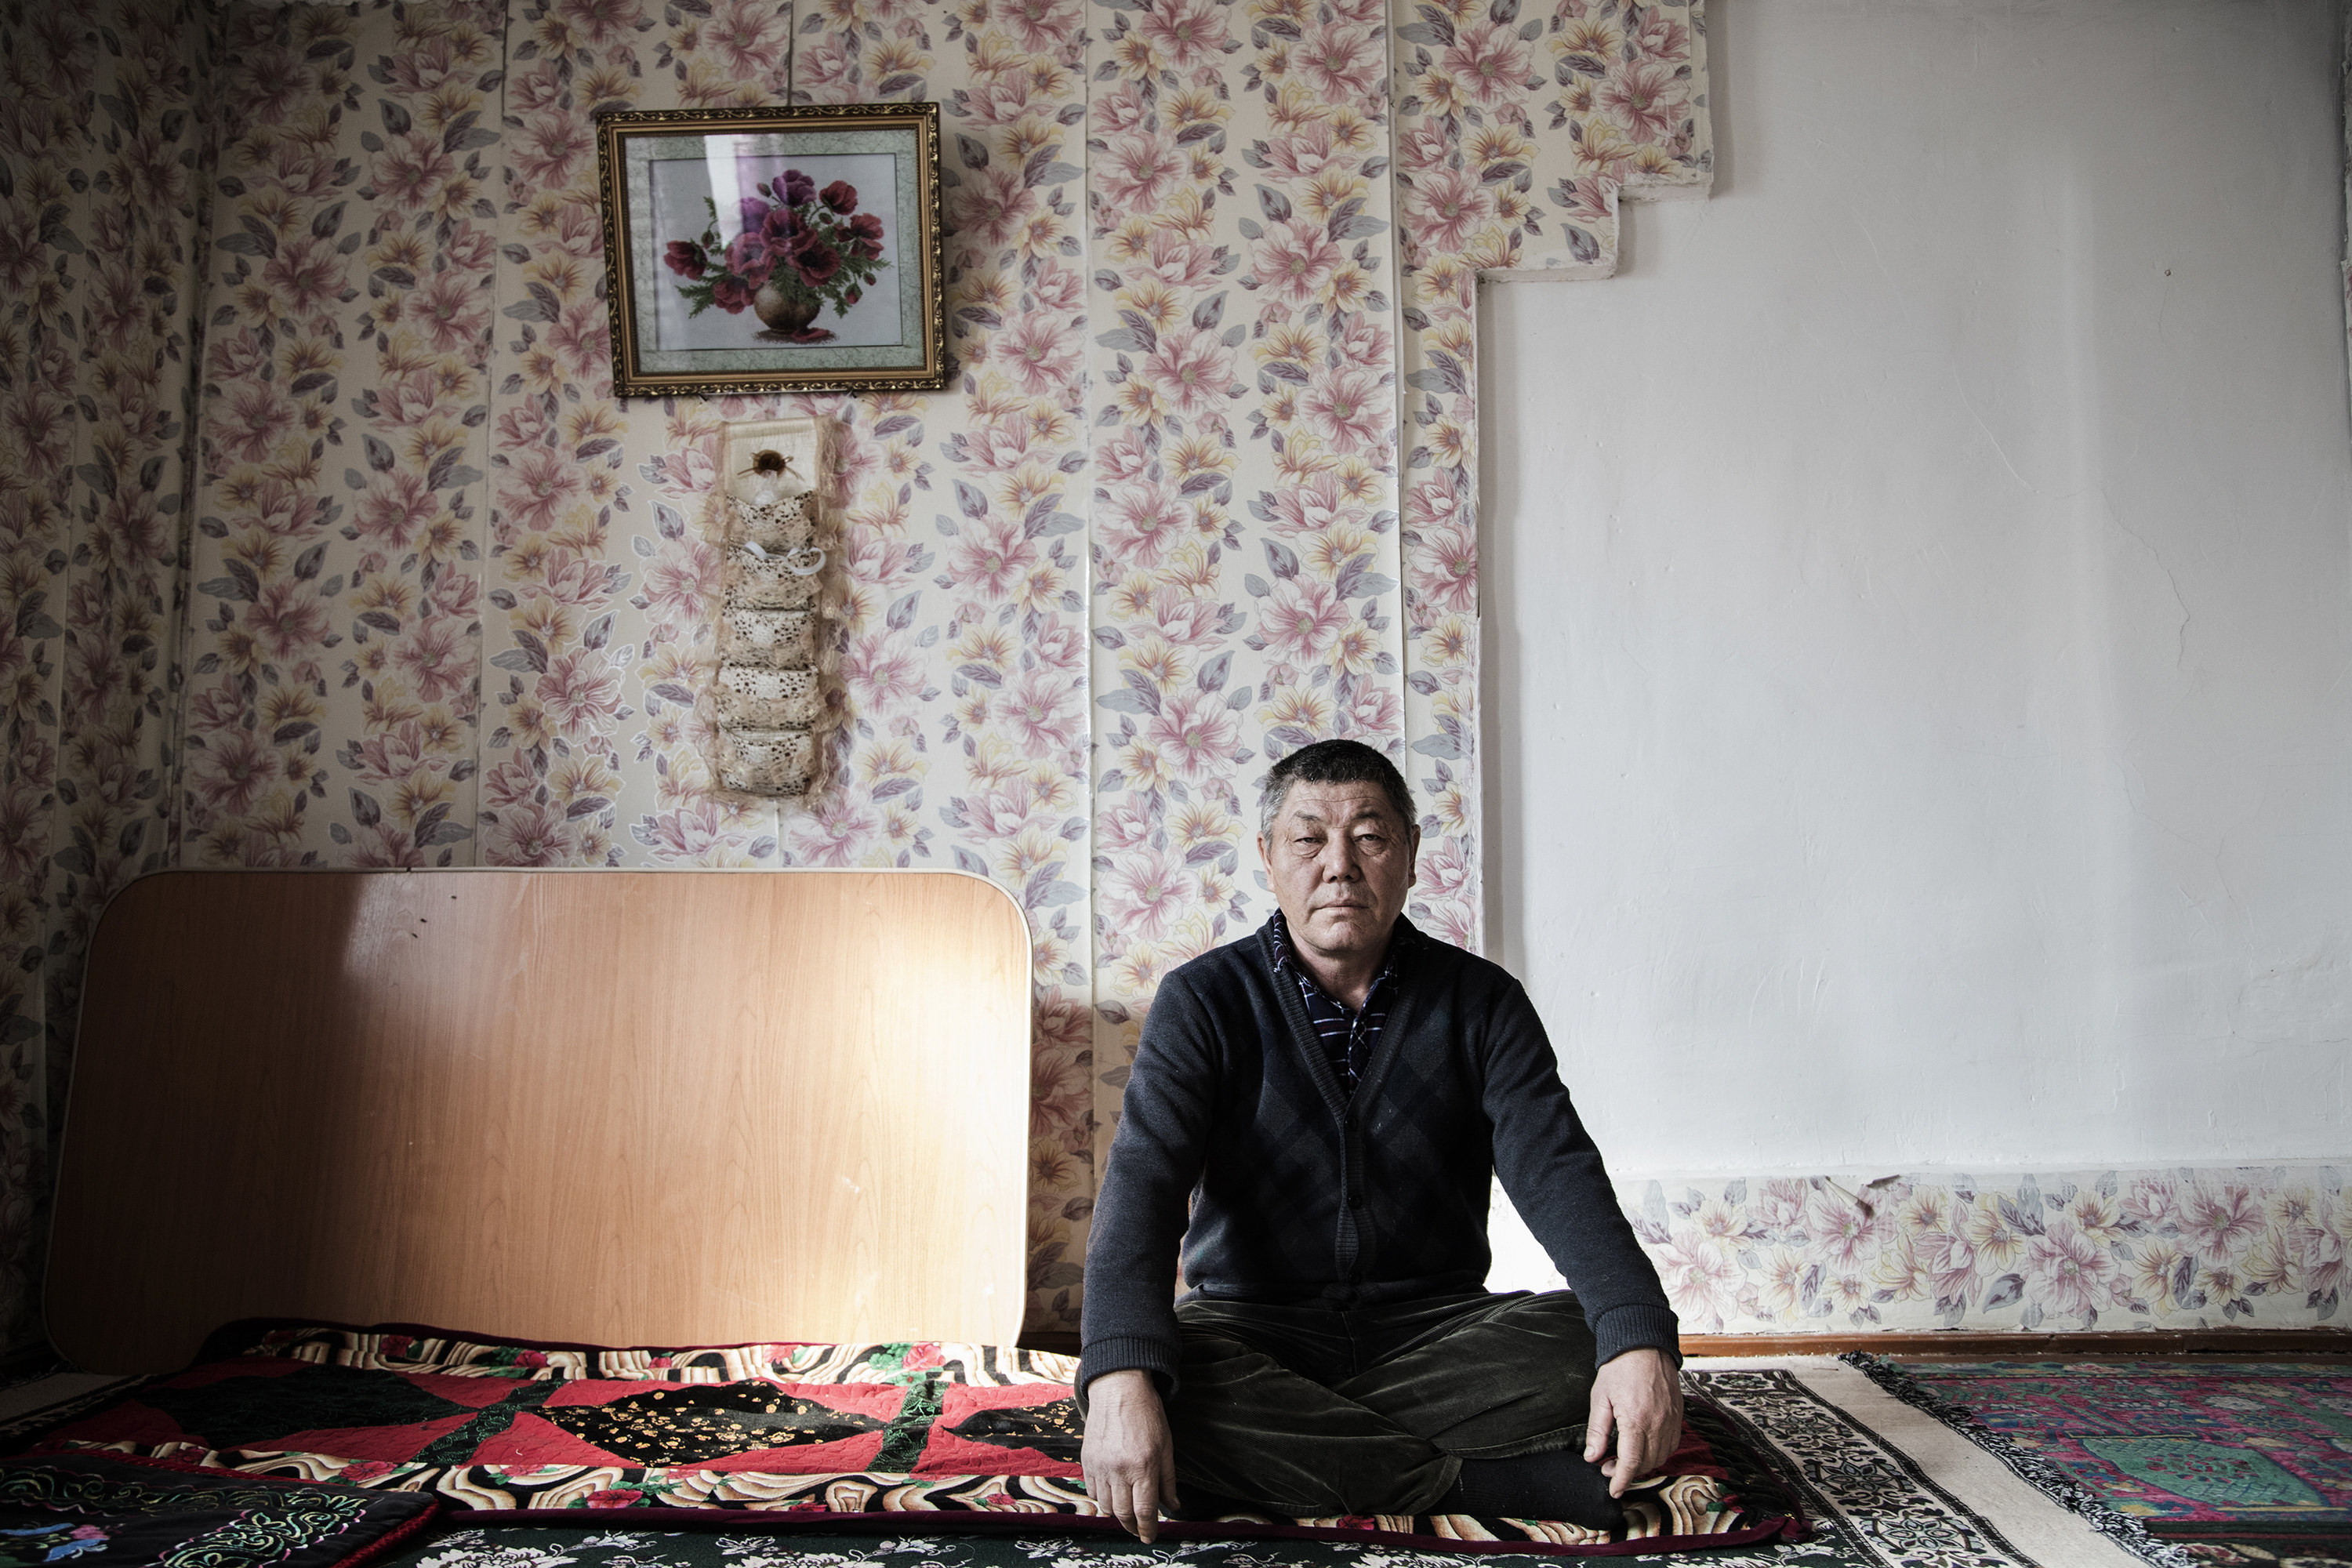 A Uighur man sitting on the floor with his hands on his knees